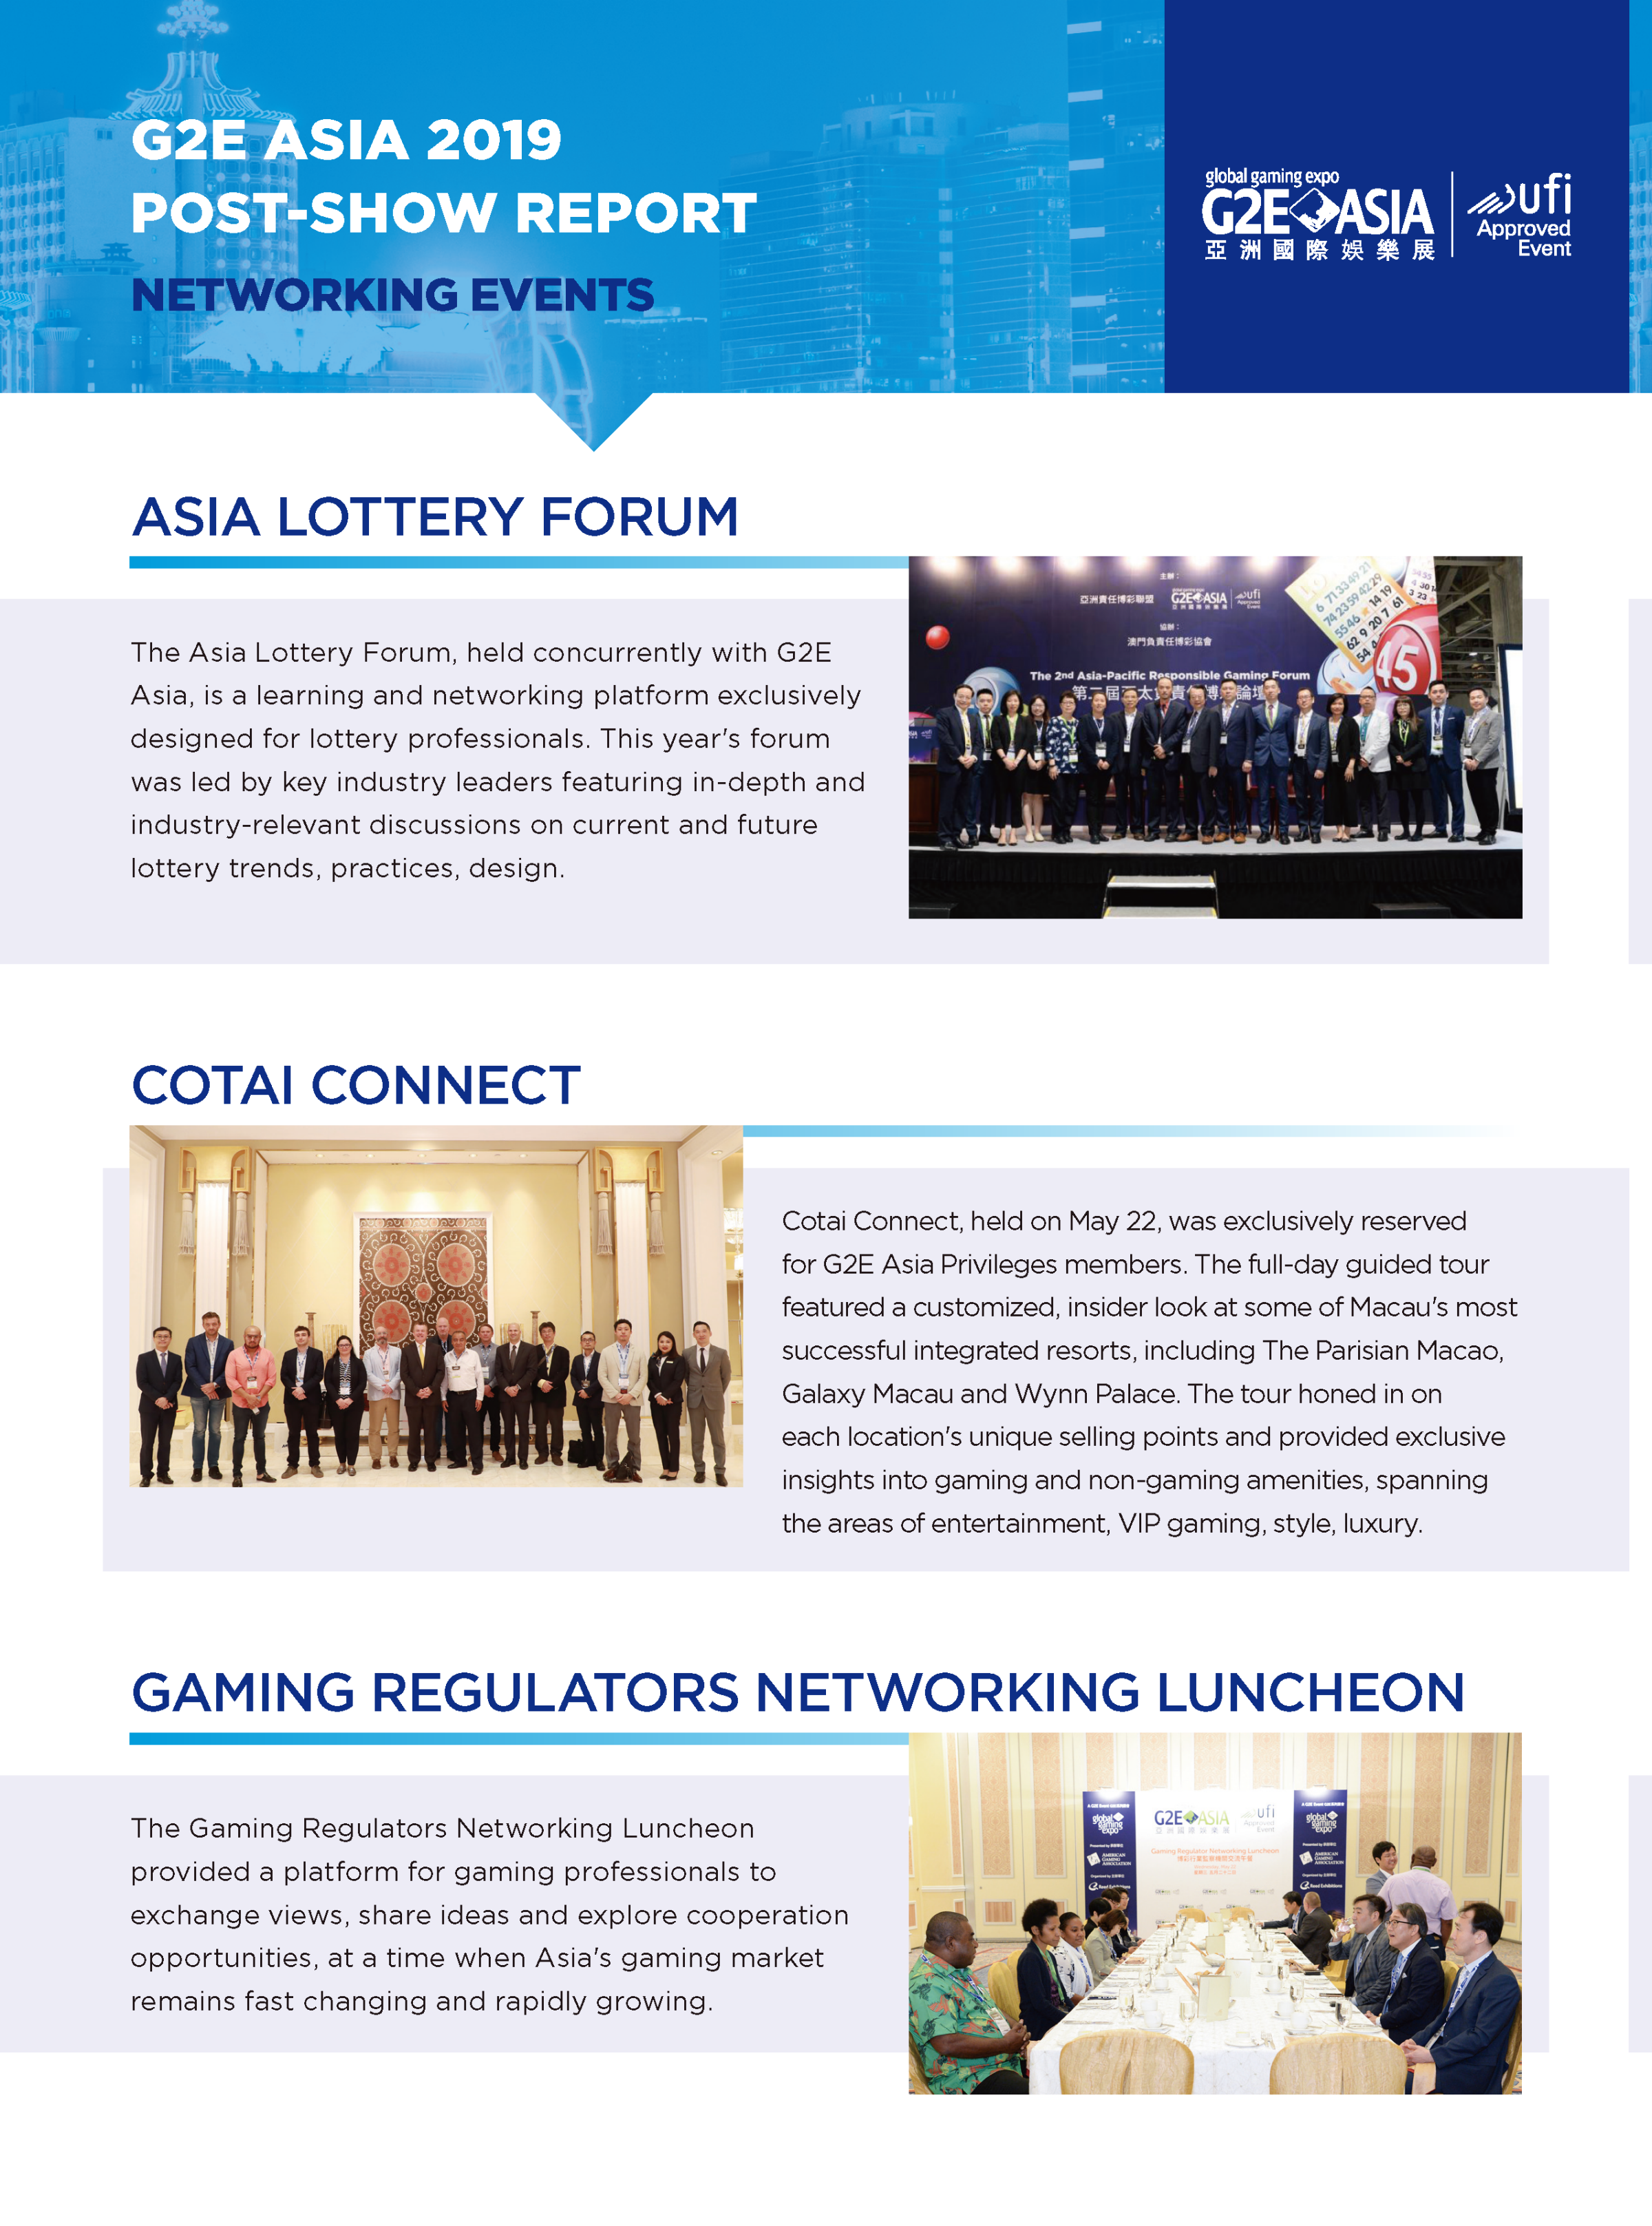 G2E Asia 2019 NETWORKING EVENTS